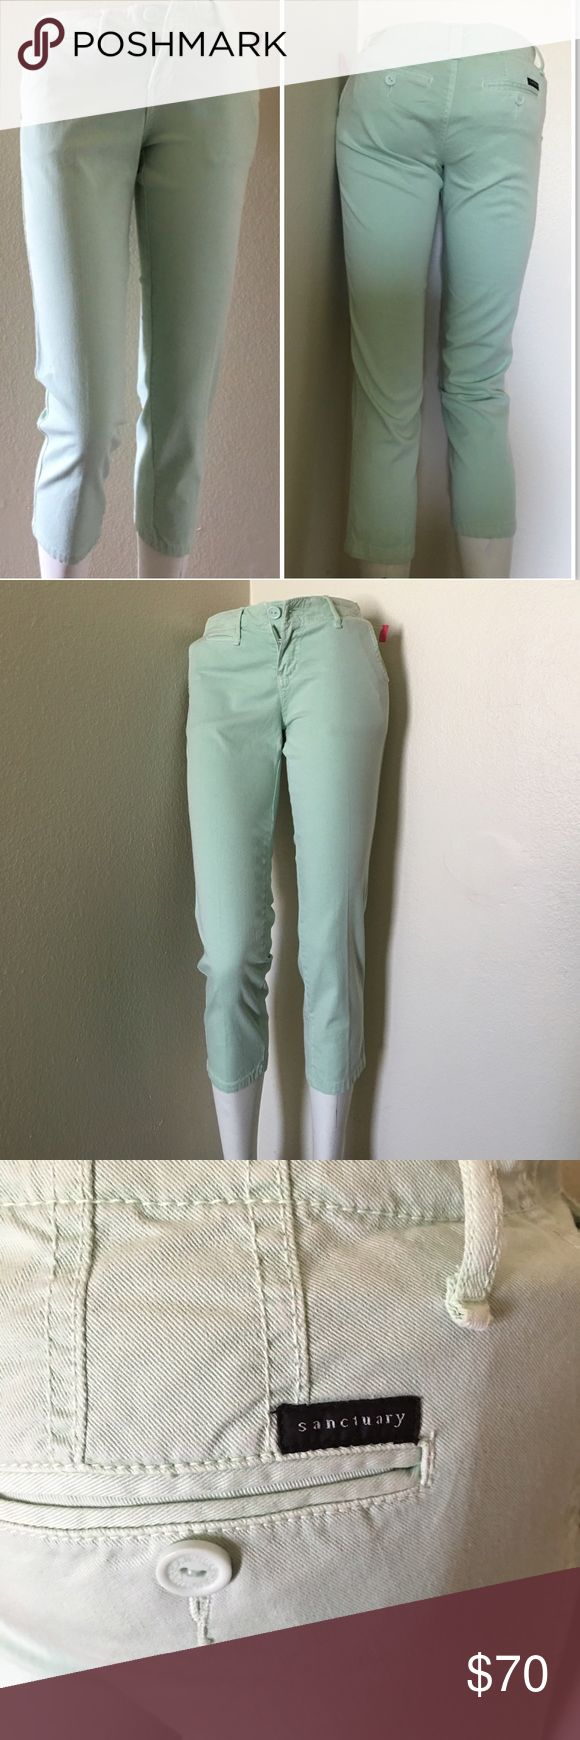 "Sanctuary Clothing Mint Capri Size 24J NWT. Mint color. 98% cotton, 2% spandex. Approx. measurements: Waist measured across 14.5""; Rise 8""; Inseam 24""; Length 32"". Size 24. Sanctuary Pants Capris"